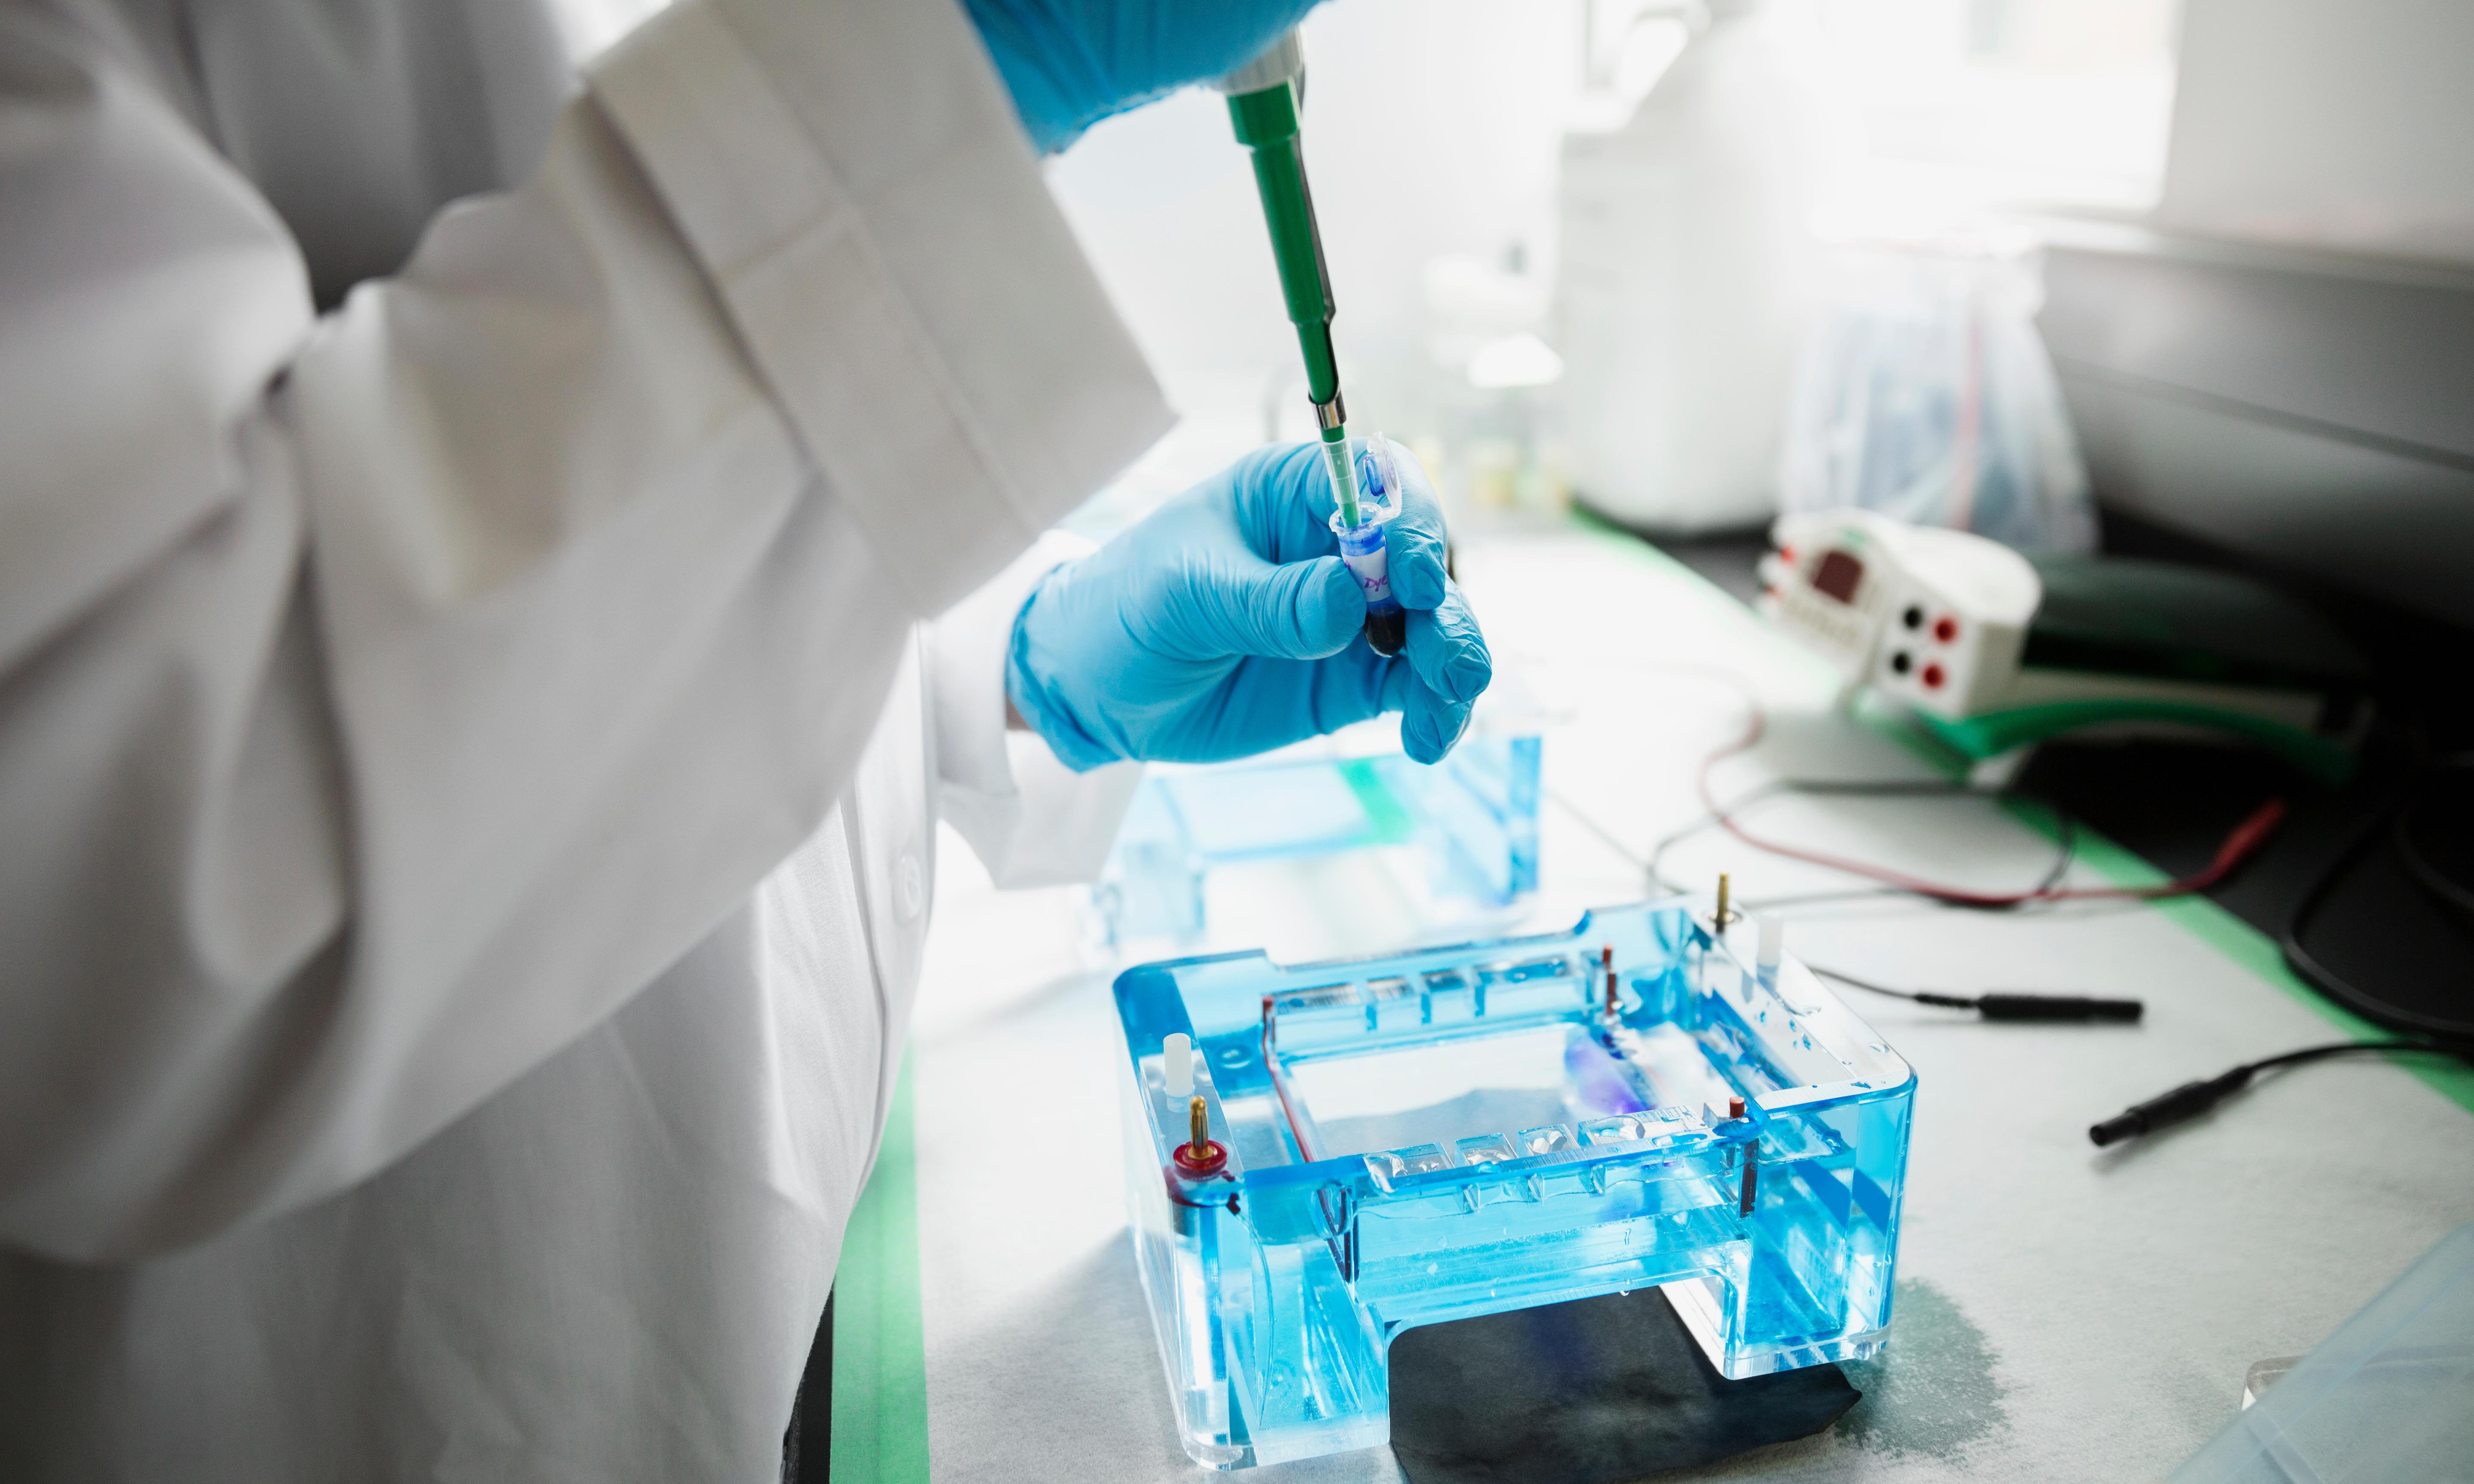 Forensic science labs are on the brink of collapse, warns report